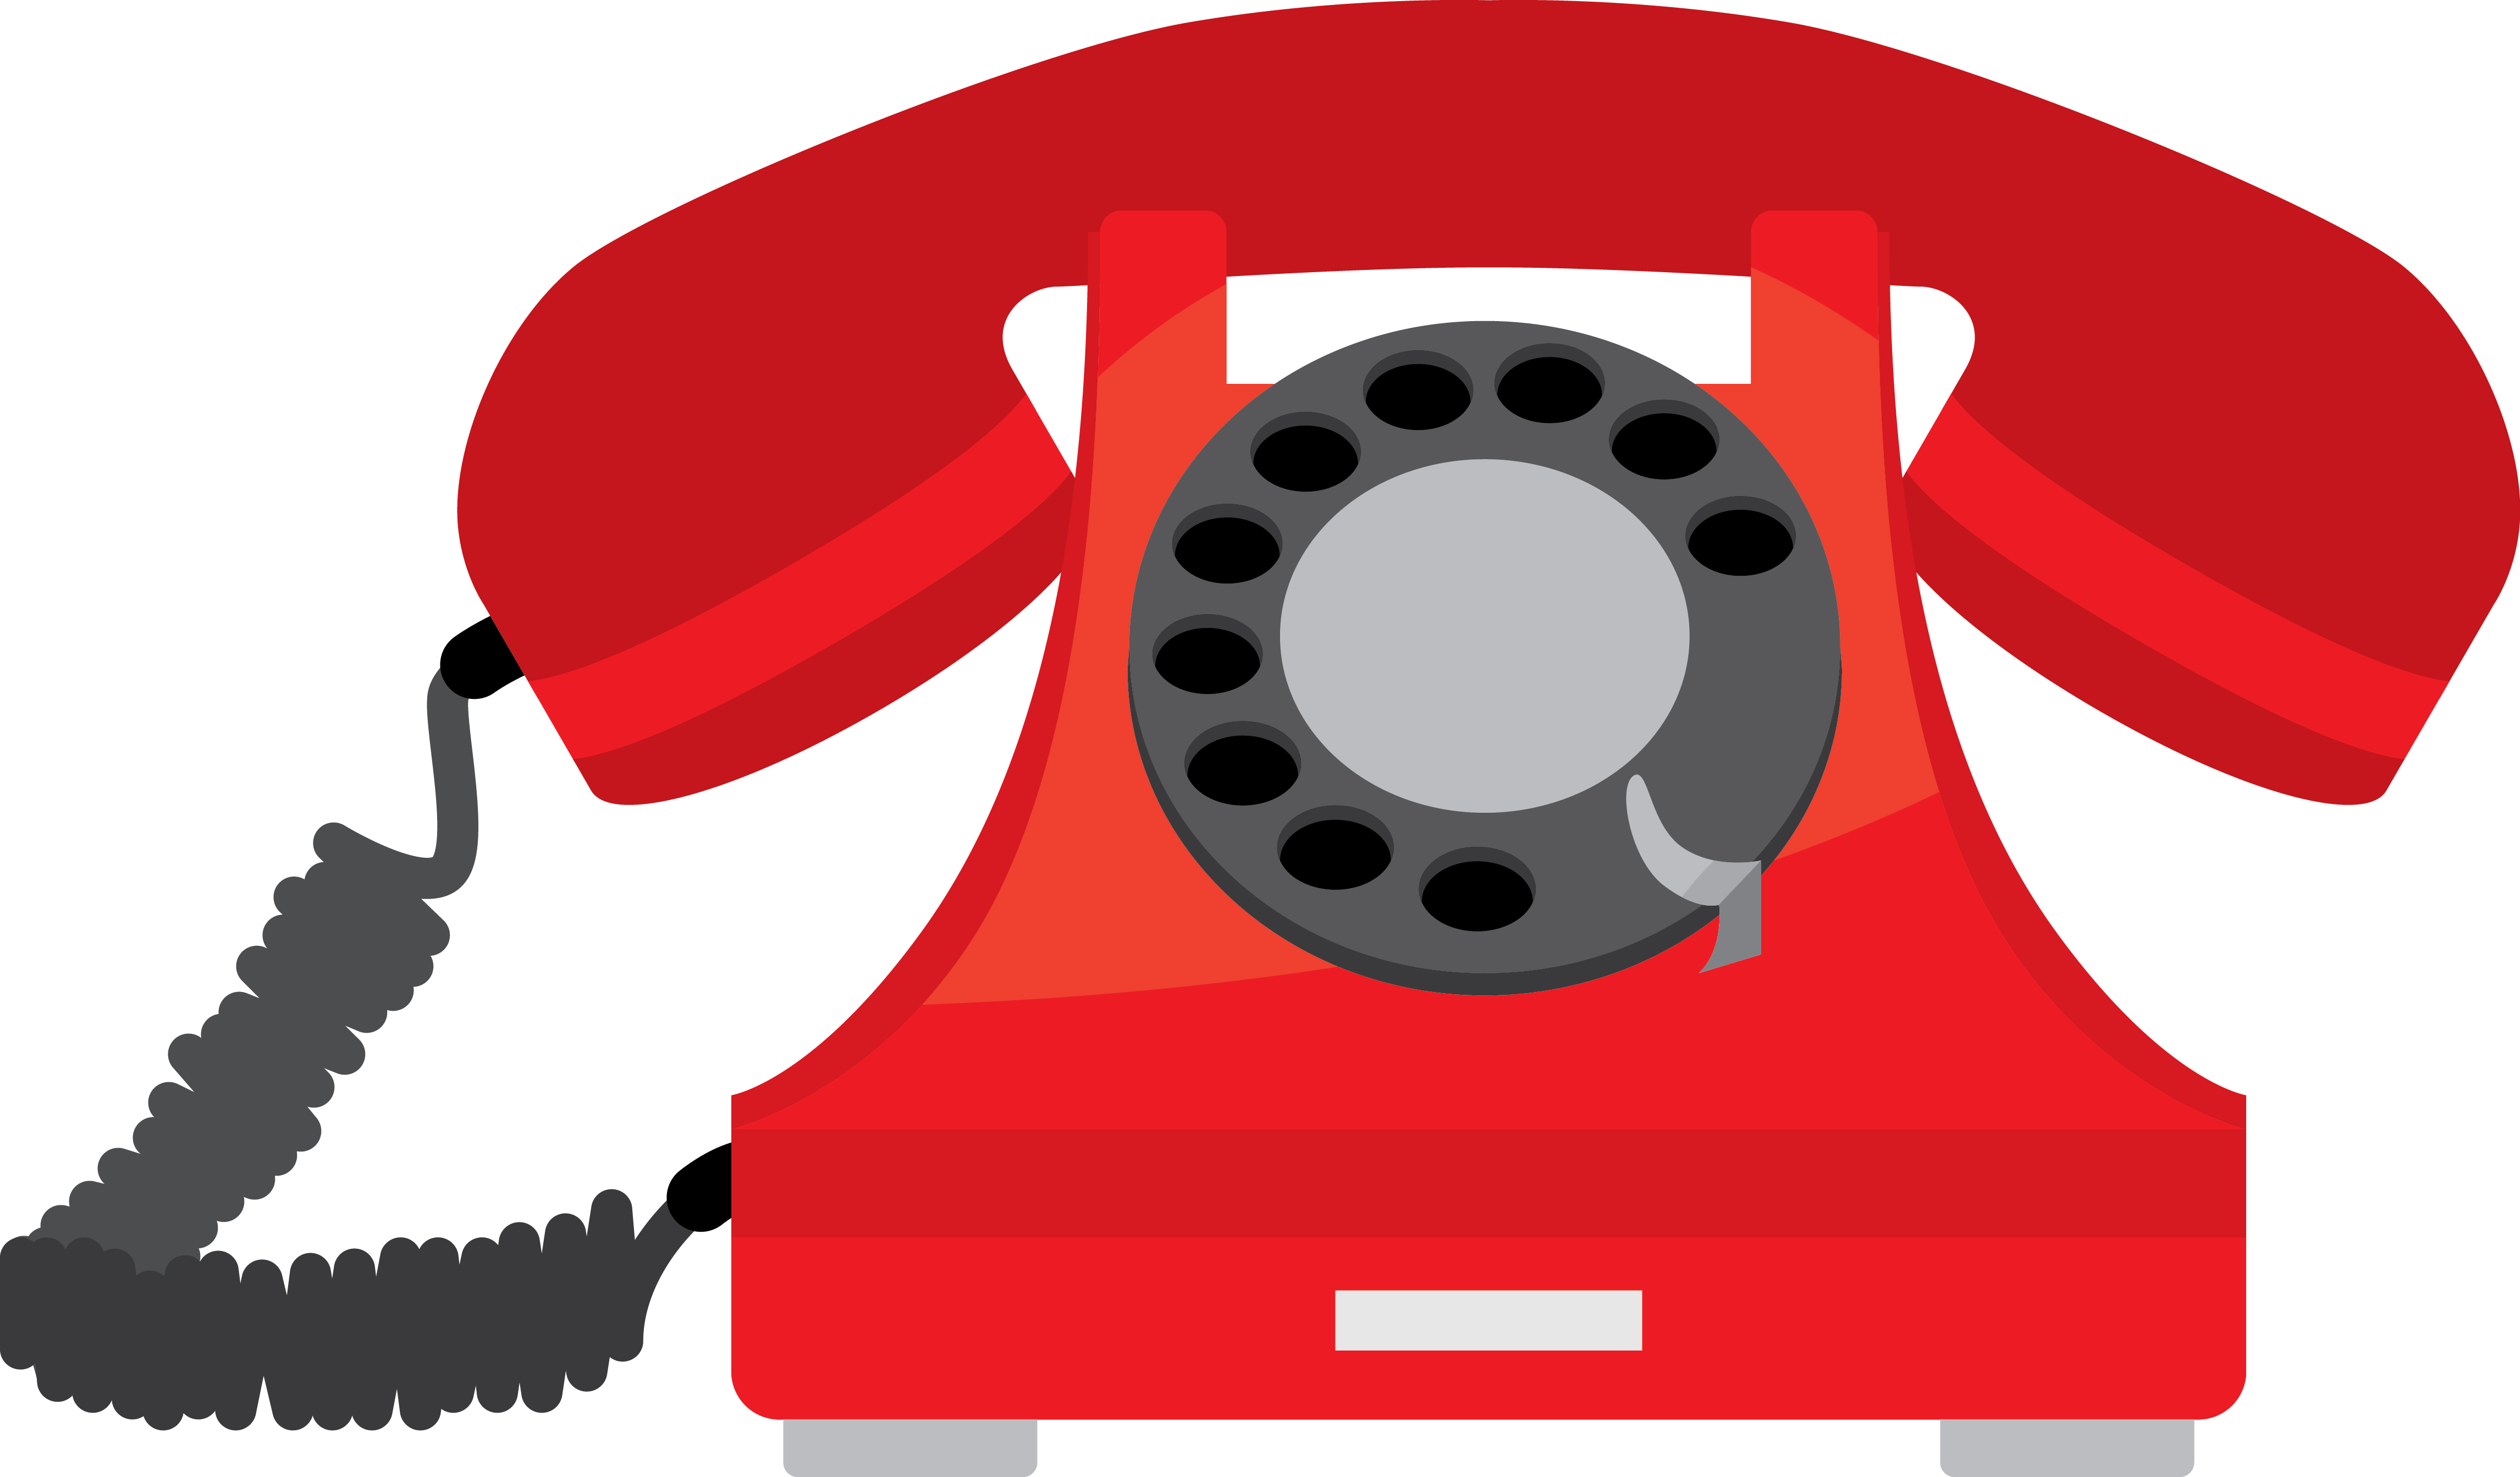 Emergency clipart important phone number. Png images free picture